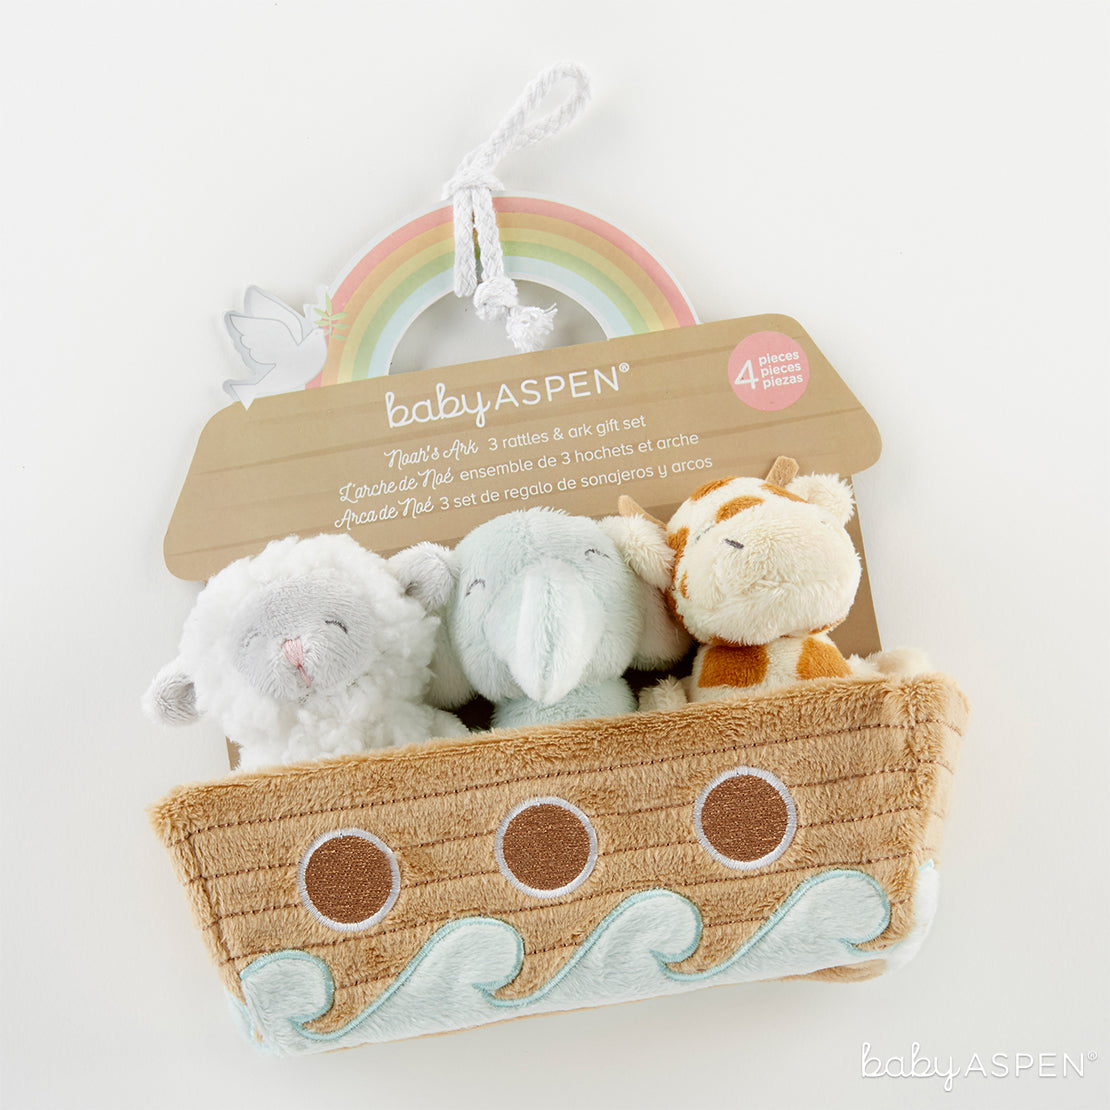 Noah's Ark Rattle Set | Holiday Gift Guide: Top 10 Baby Picks for 2018 | Baby Aspen